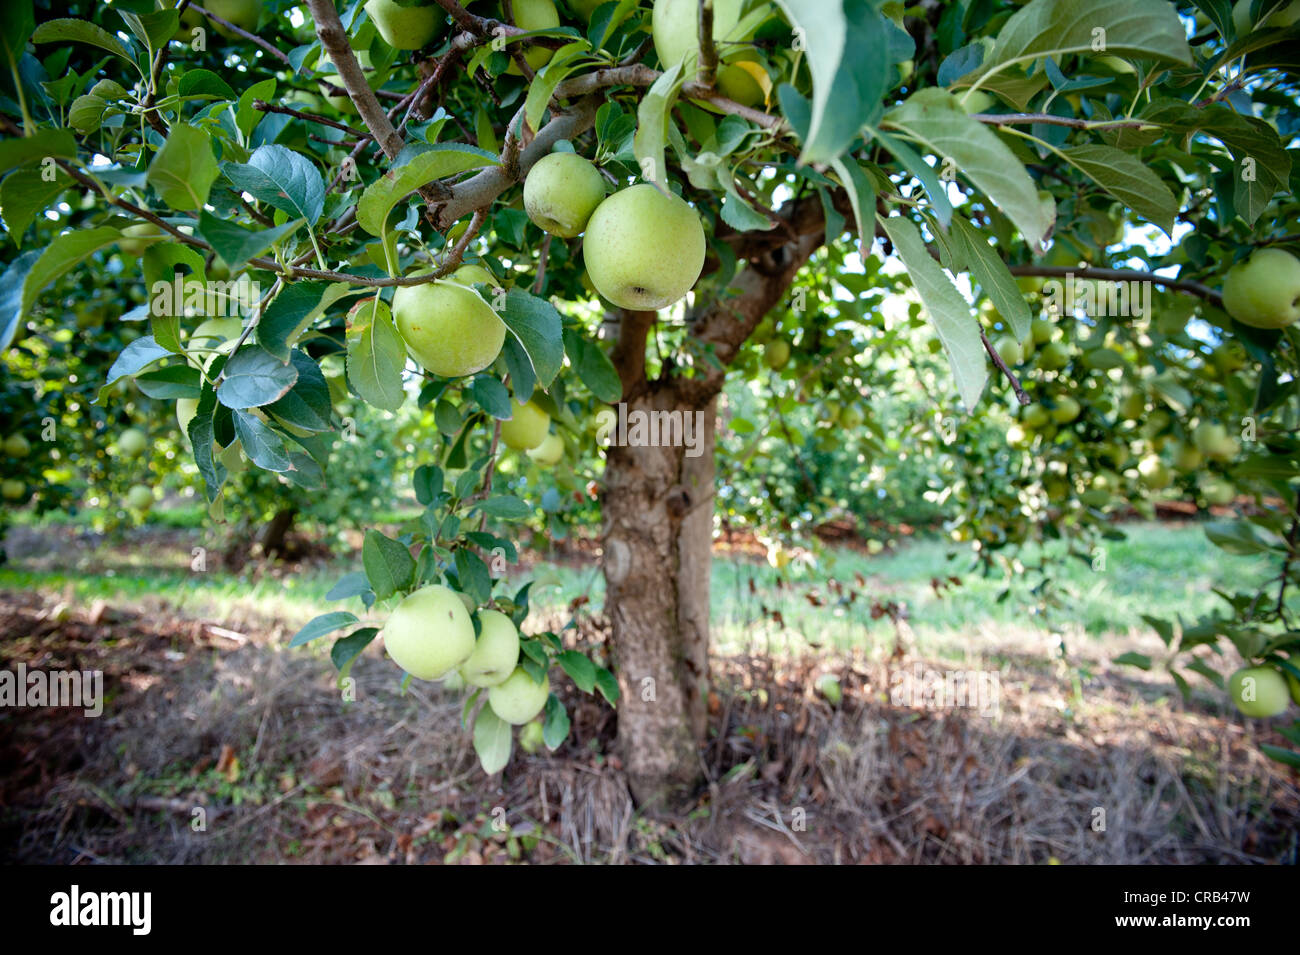 Apples hanging off the branch in an apple orchard - Stock Image